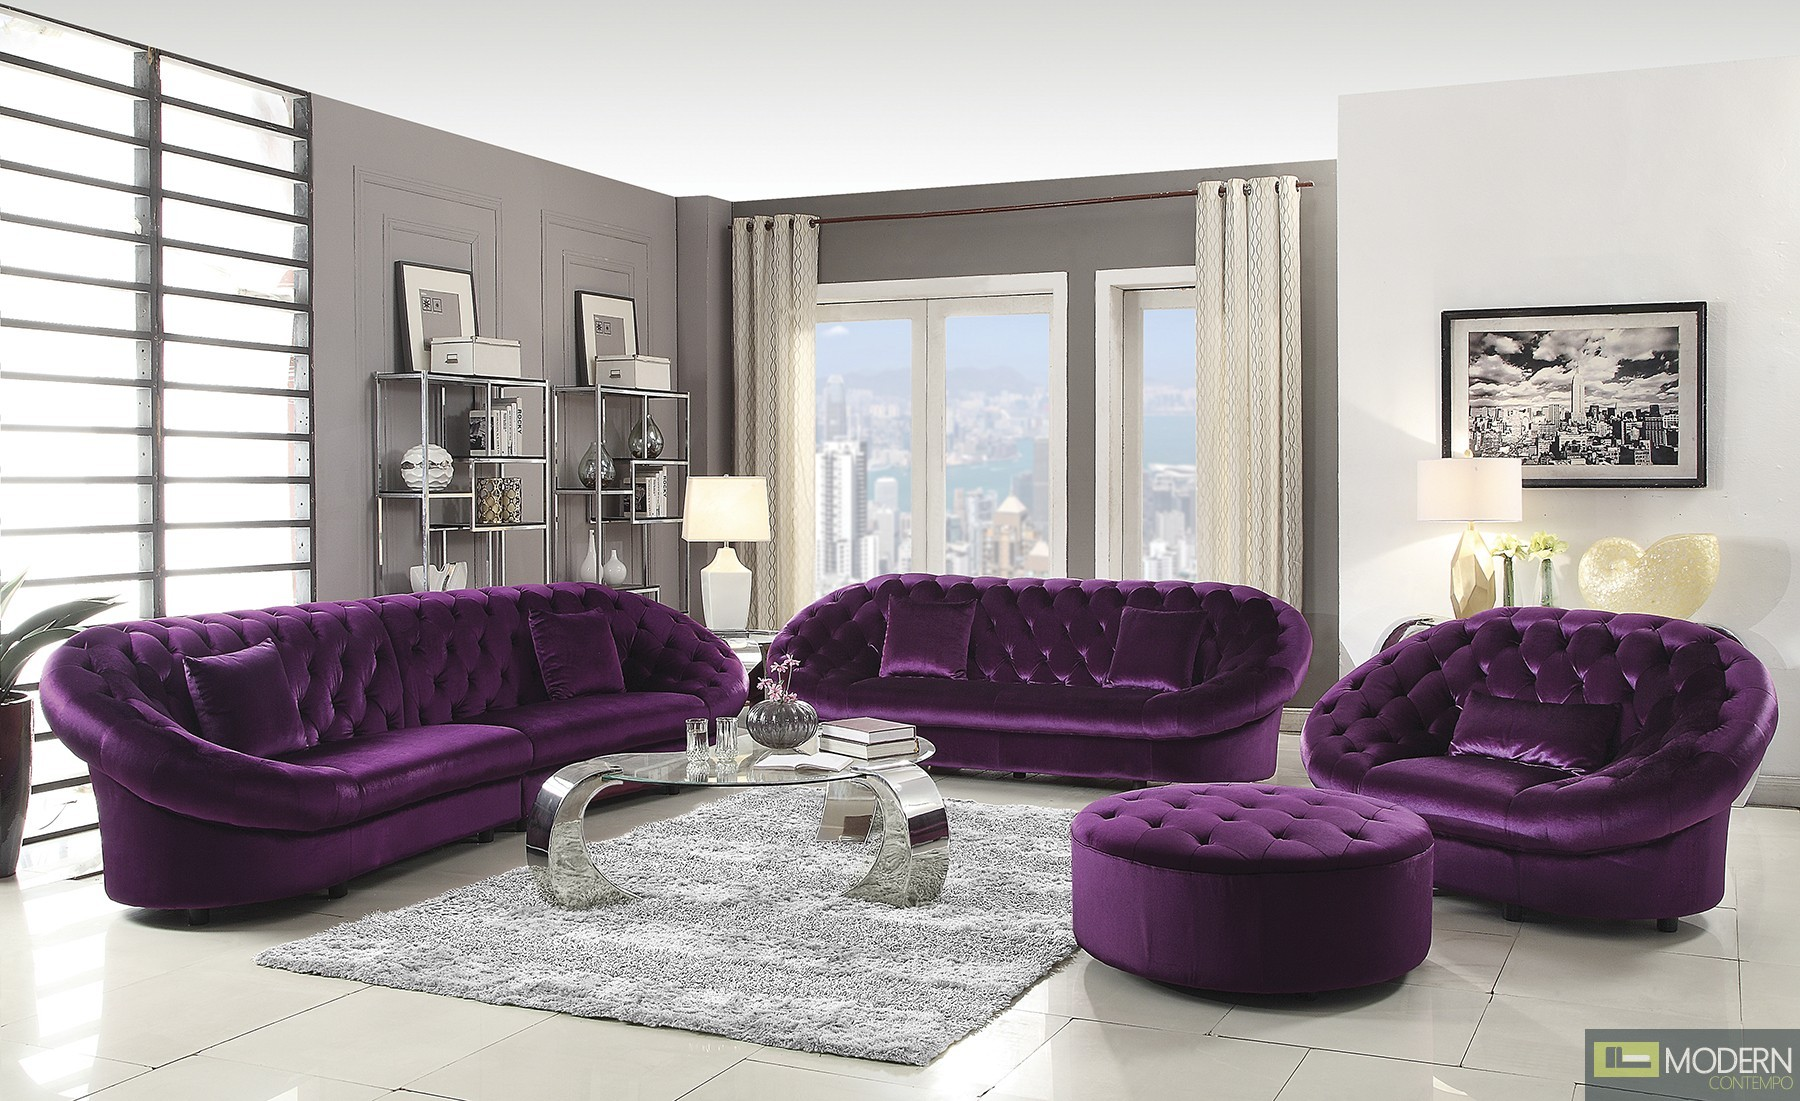 Warm Purple Sofa to Complete Your Living Room Decor: Aubergine Couch | Lavender Chaise Lounge | Purple Sofa